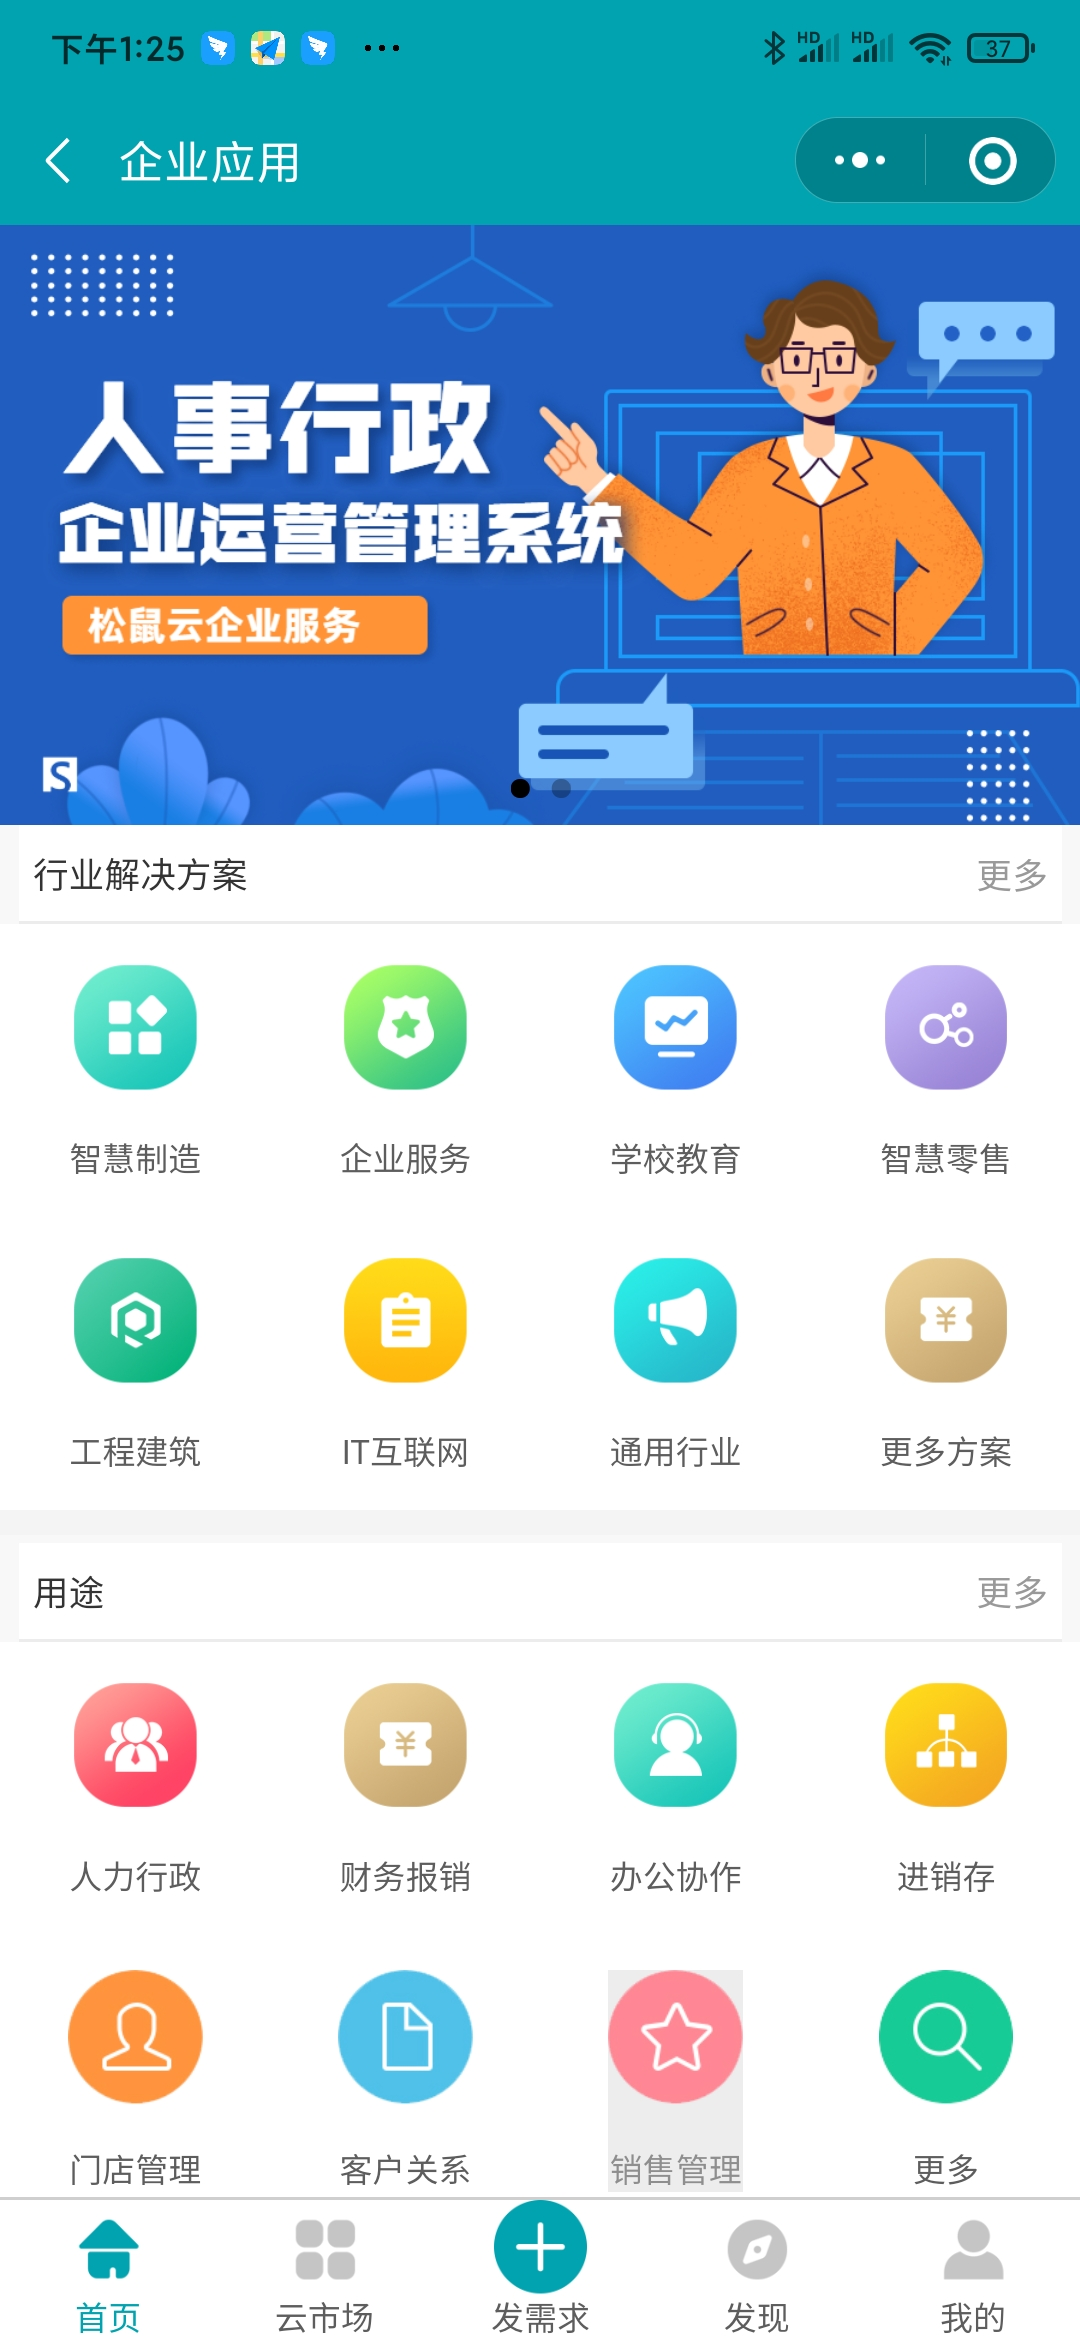 Screenshot_2020-05-19-13-25-37-698_com.tencent.mm